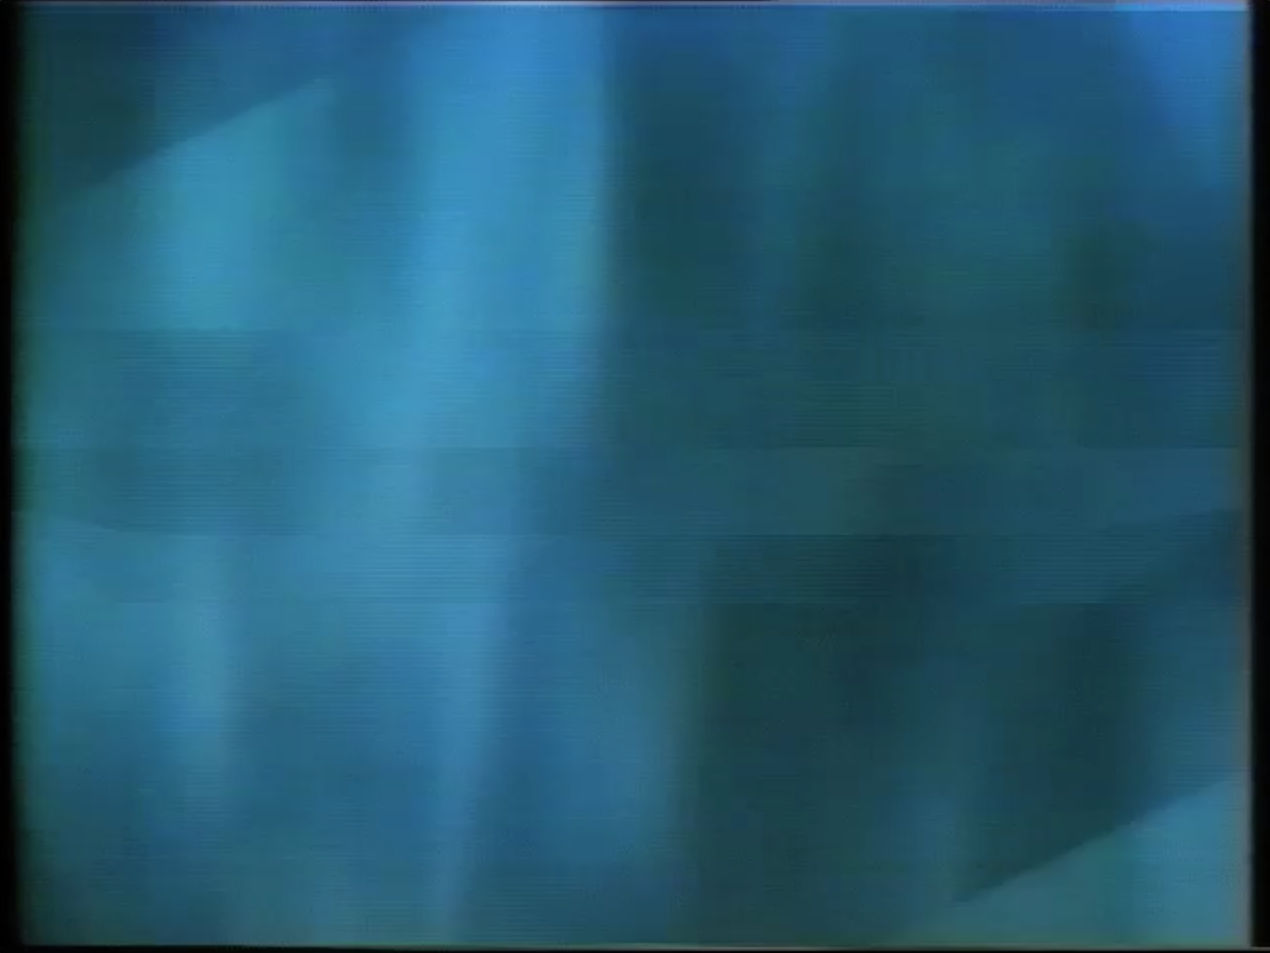 Geste du Soleil (1993) is a video installation by Rene Beekman.